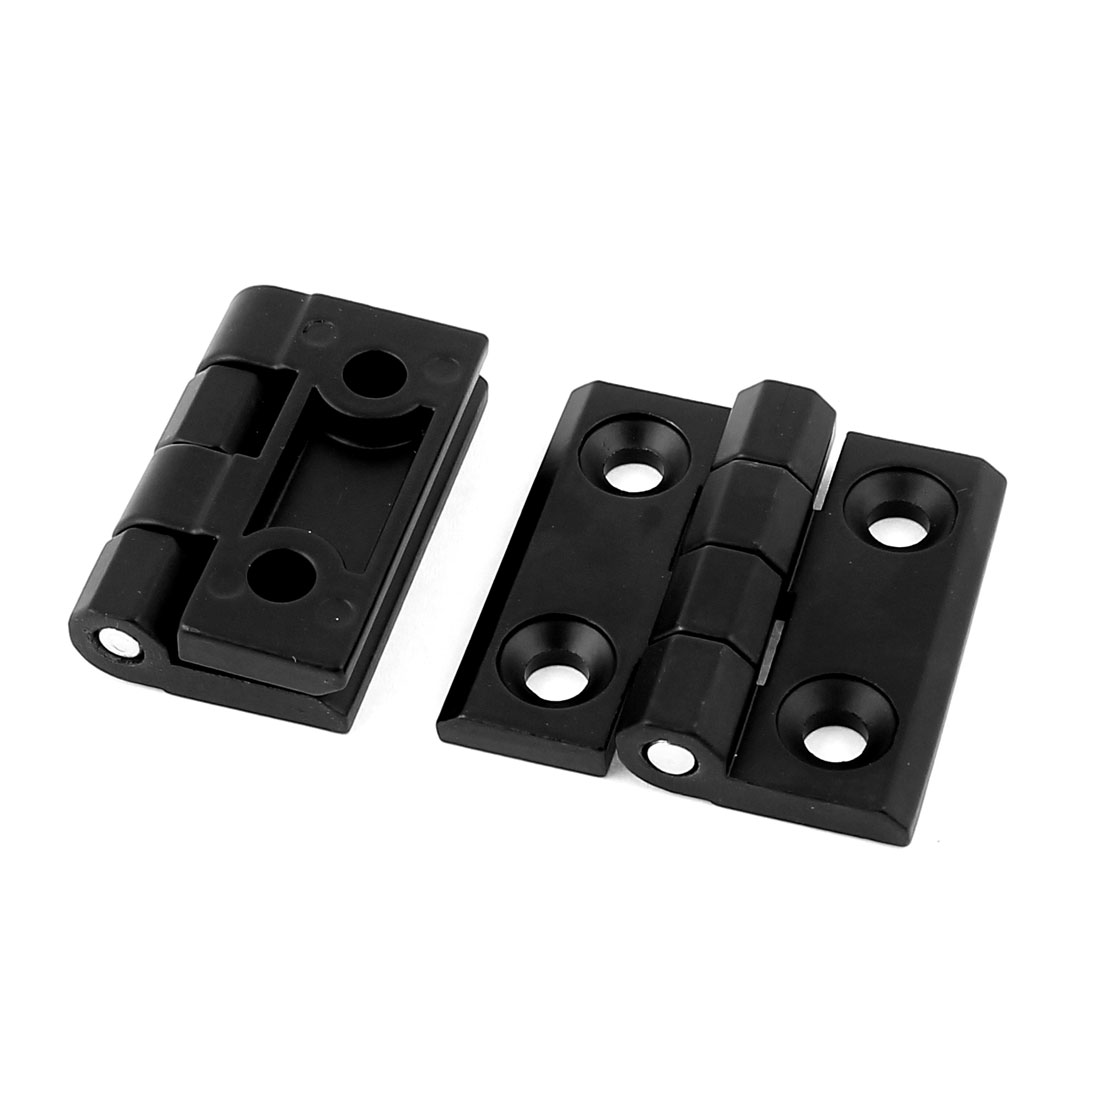 UXCELL 50Mm X 50Mm Zinc Alloy Closet Cupboard Cabinet Door Butt Hinge Black 2Pcs(China (Mainland))